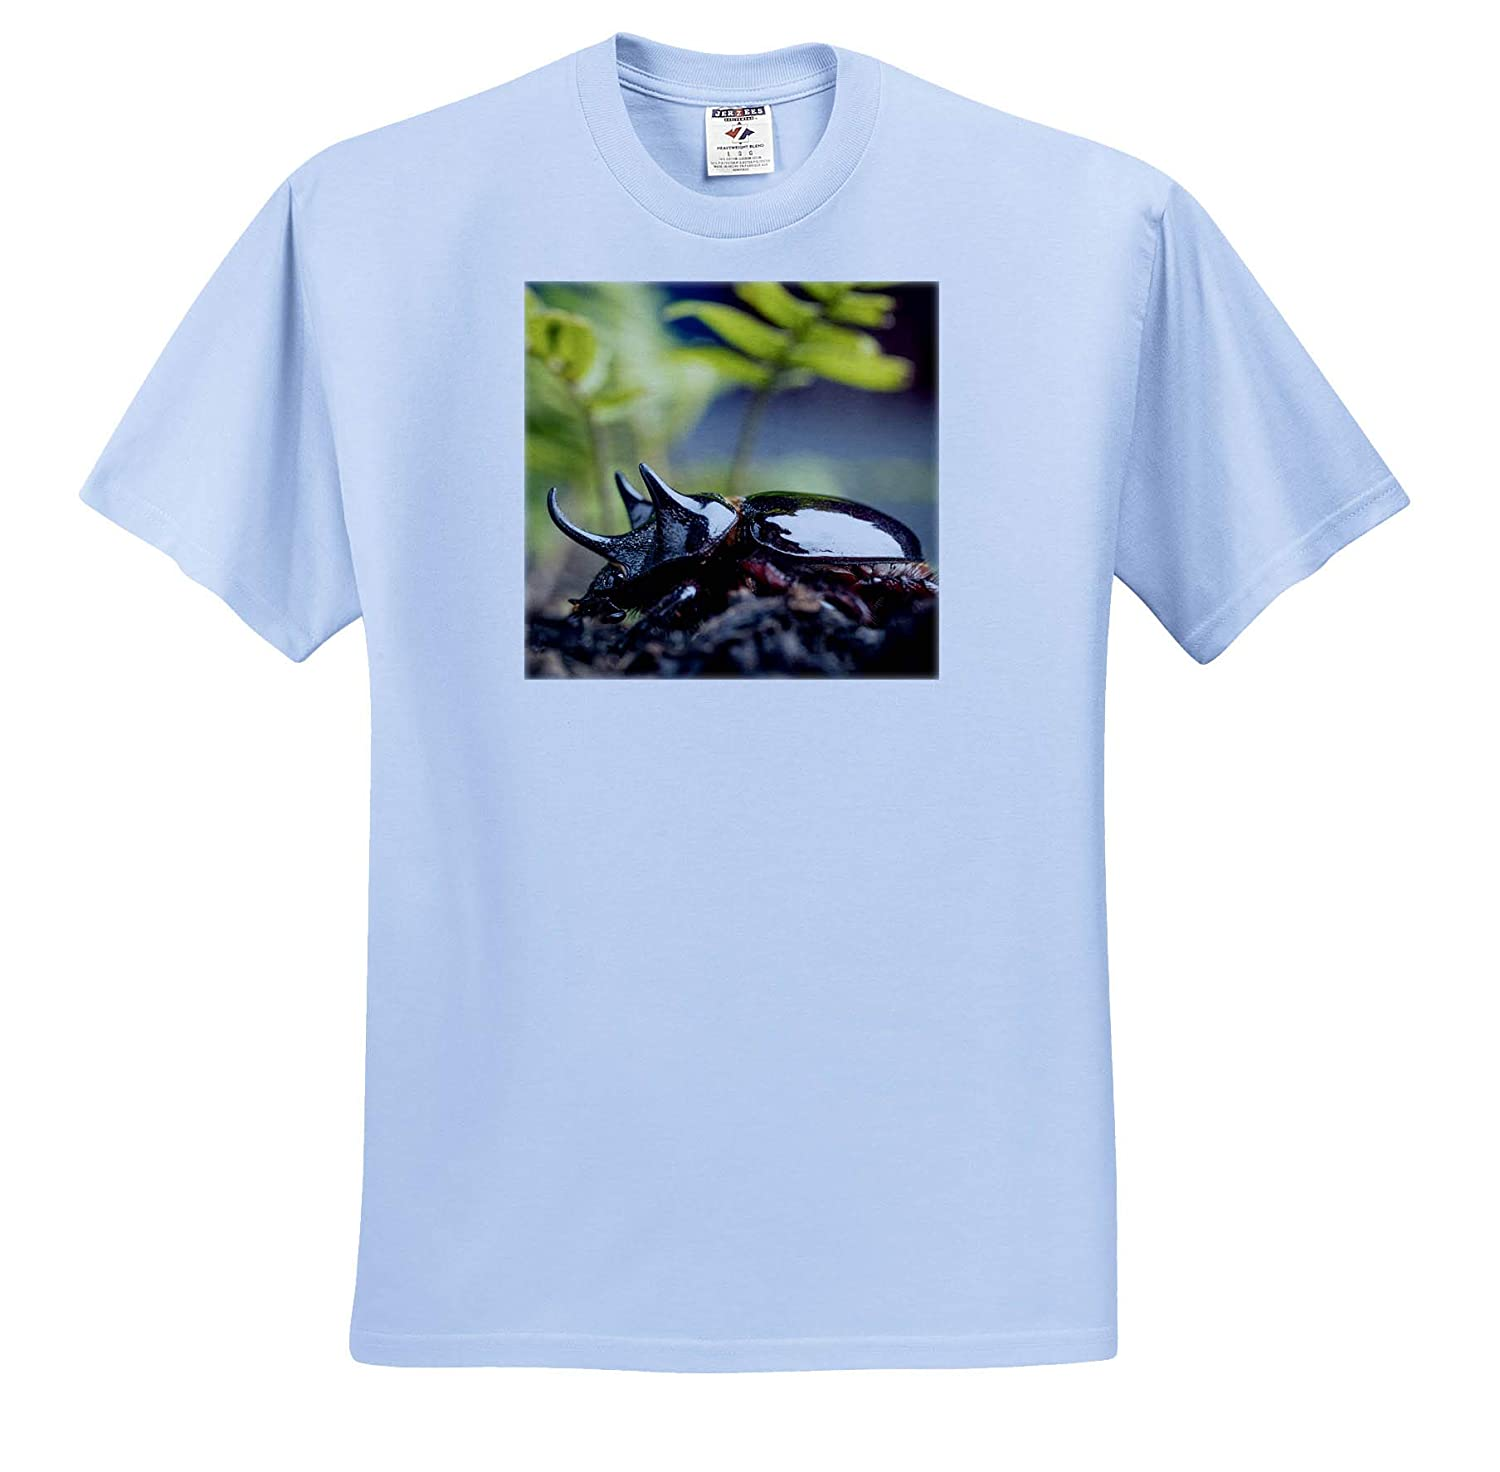 or Hercules Beetle Showing Horns ts/_314774 Elephant Major Ox 3dRose Danita Delimont - Adult T-Shirt XL Insects